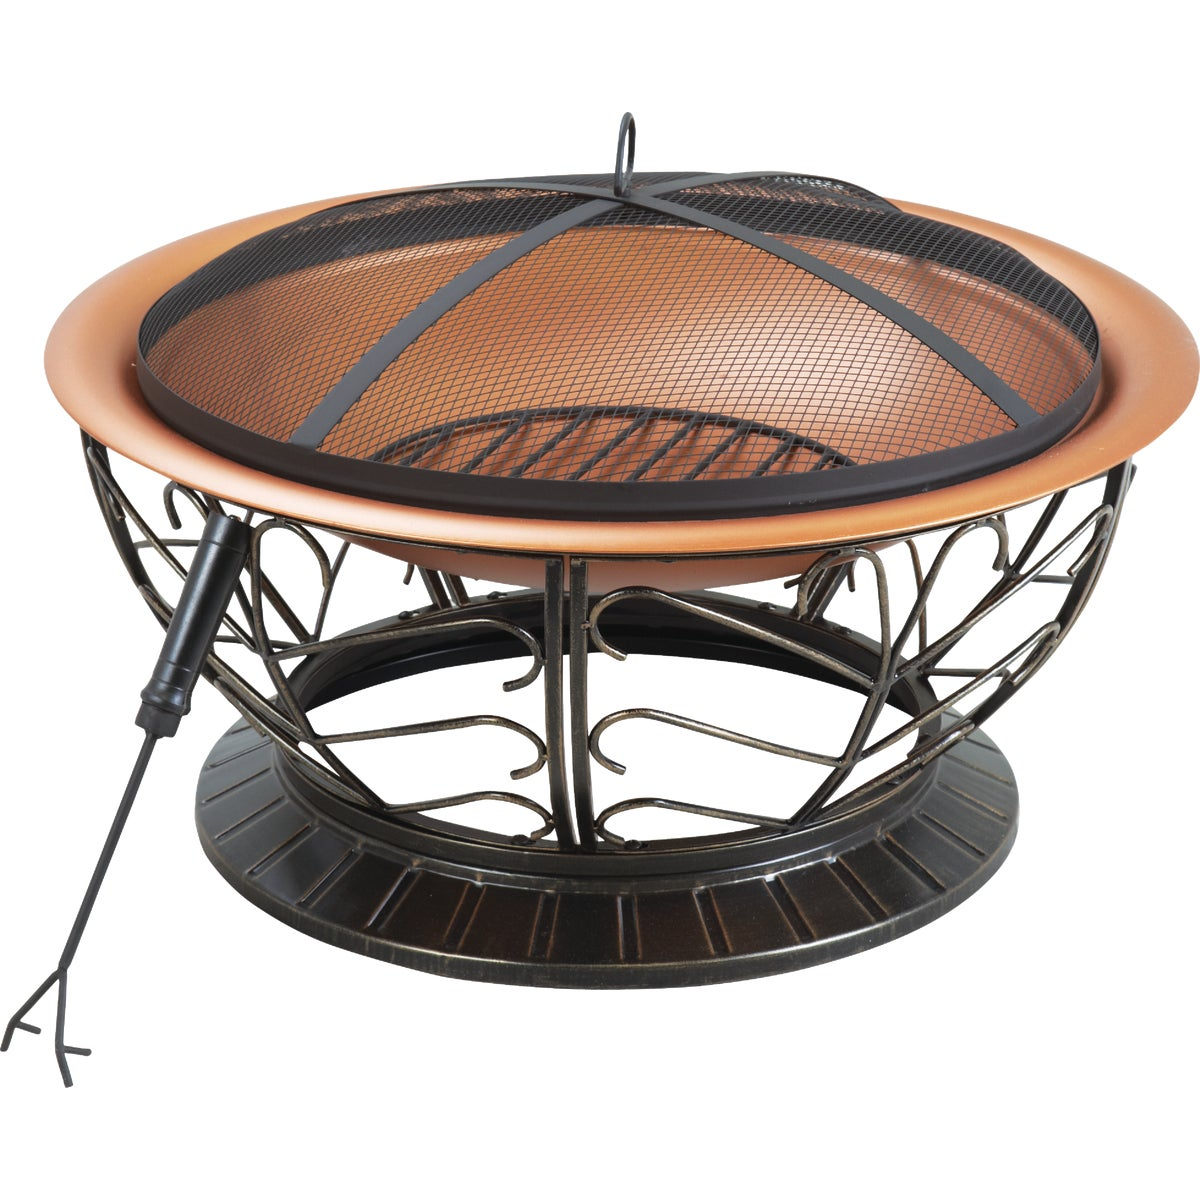 "30"" STEEL COPPER FIREPIT - FT-114(2) by Do it Best"